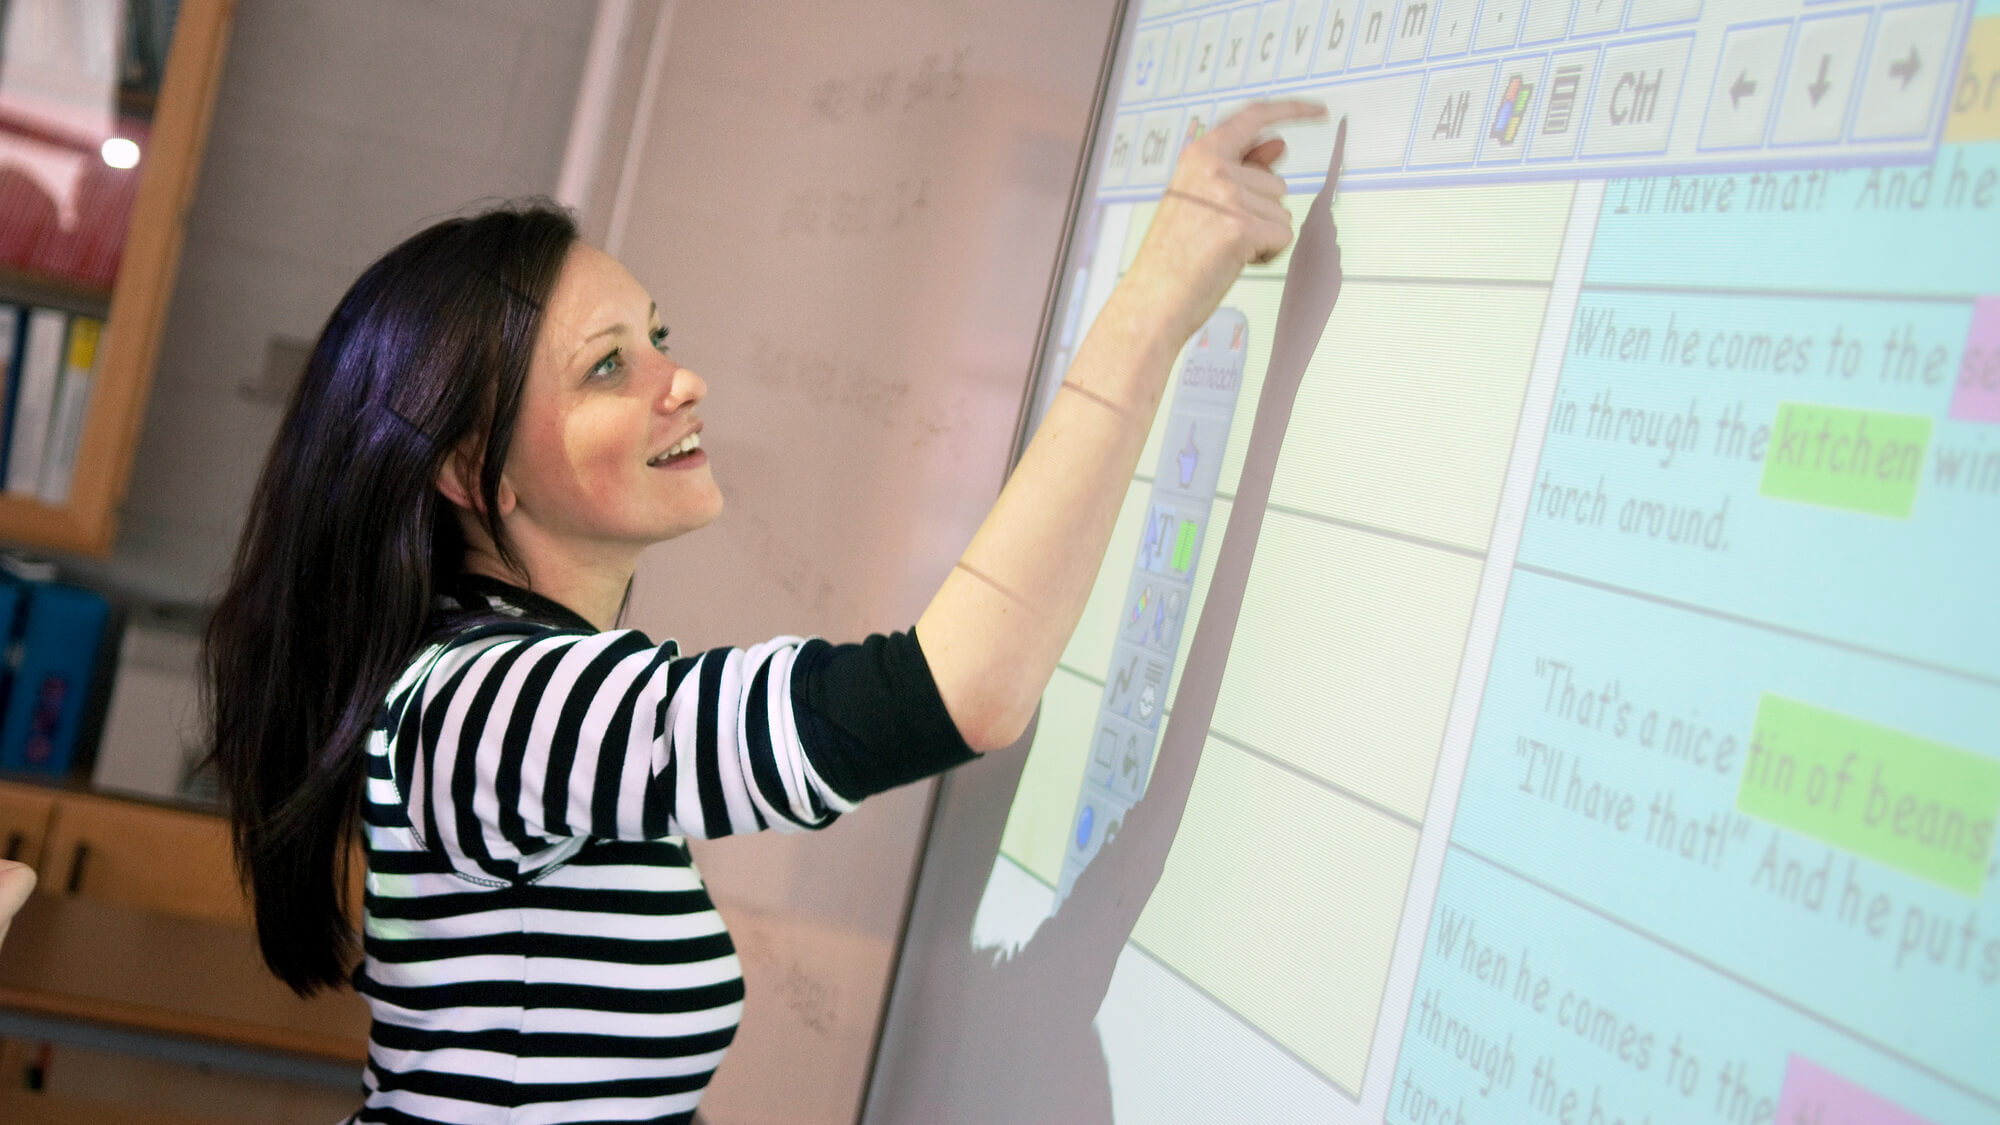 Apprenticeships teacher using a whiteboard